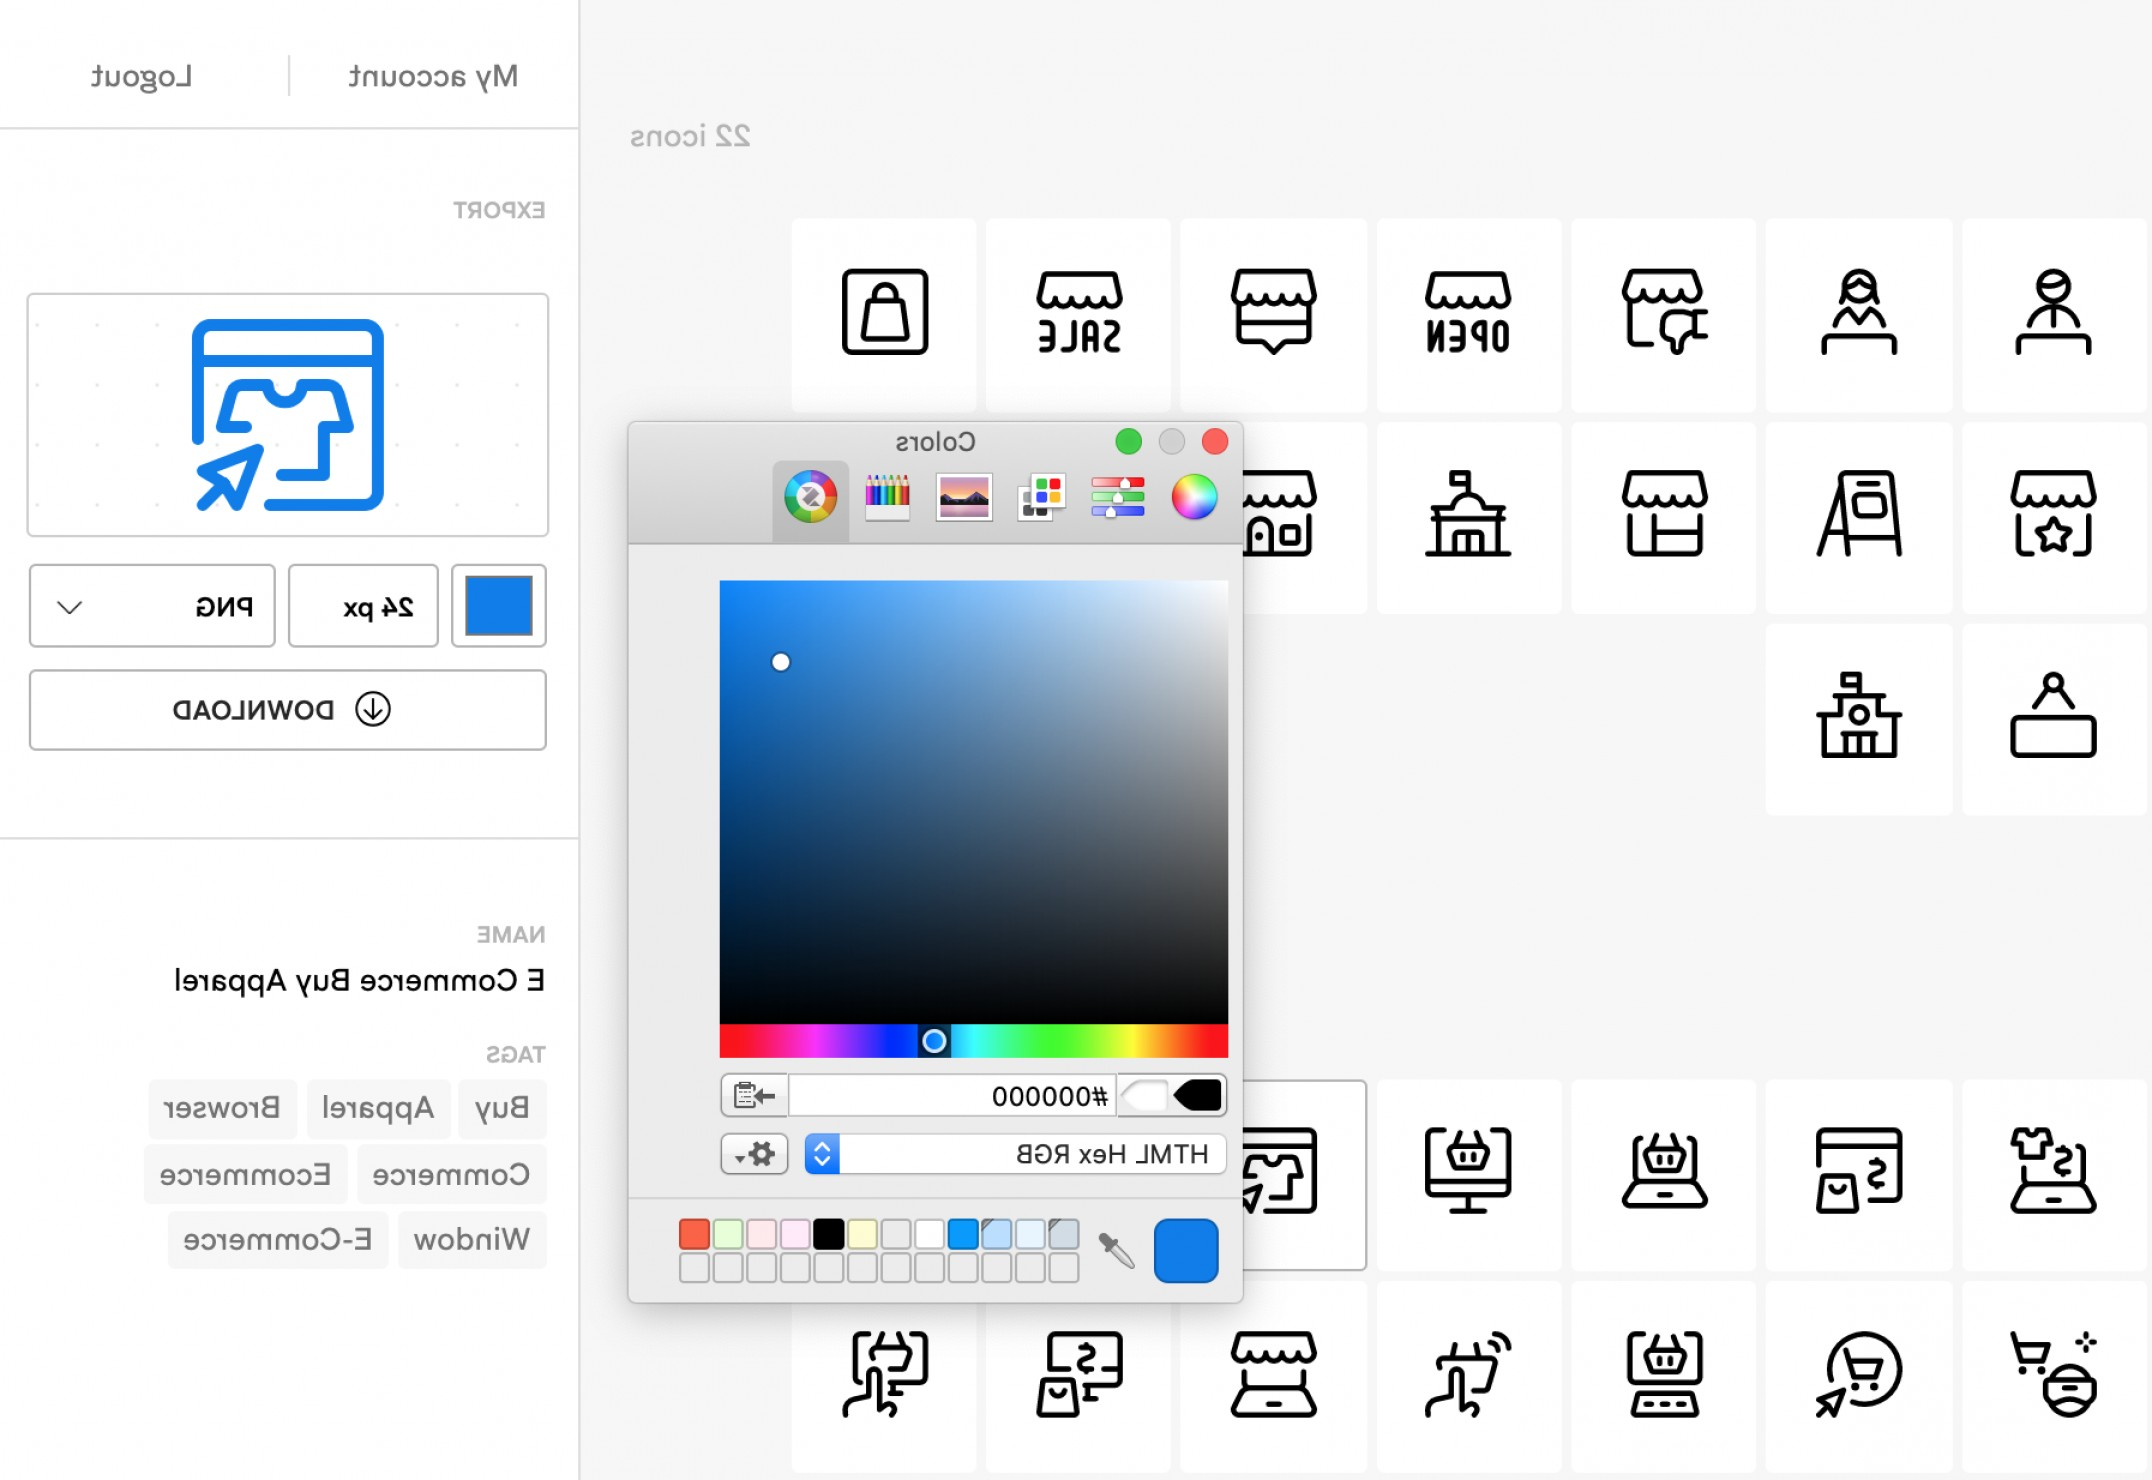 Amazing Window Vector: Search And Download Icons With The New Streamline App Cdacfcfd